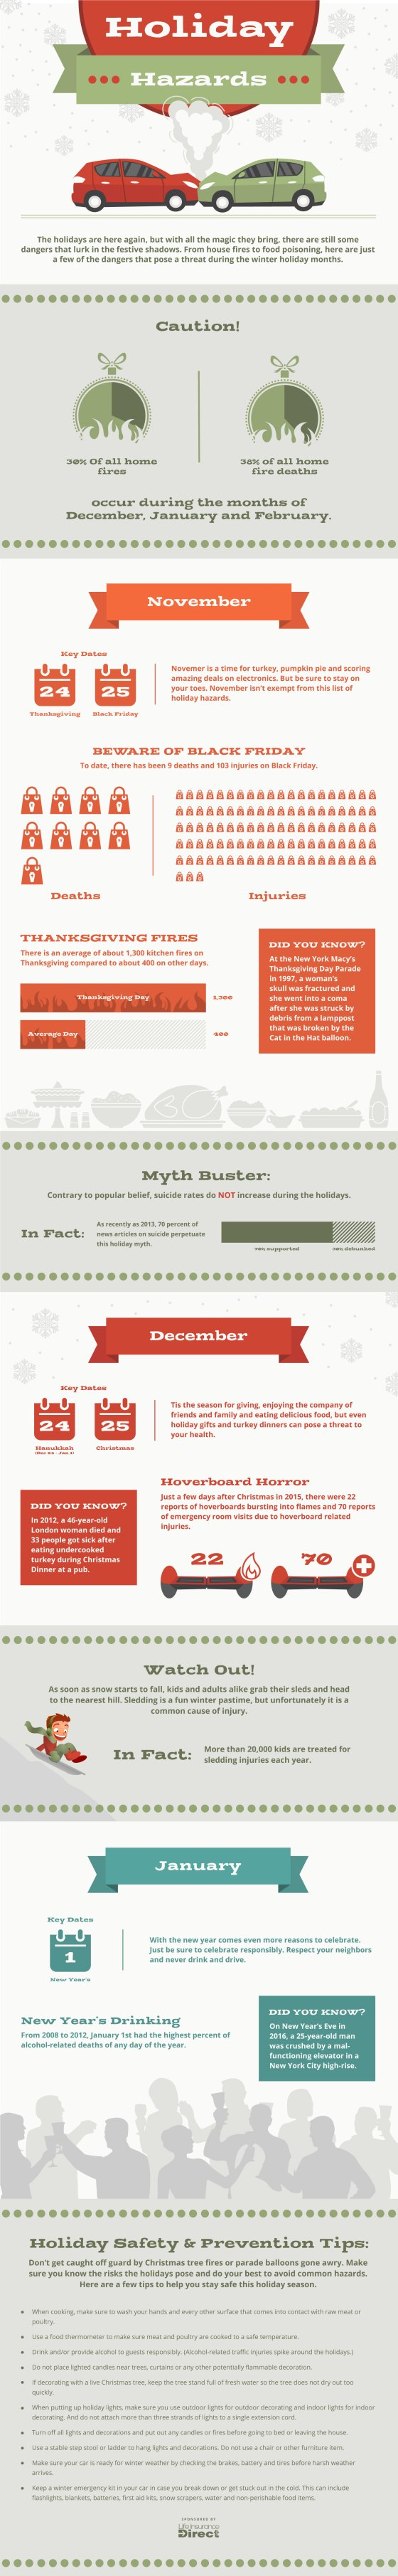 Infographic : Holiday Hazards